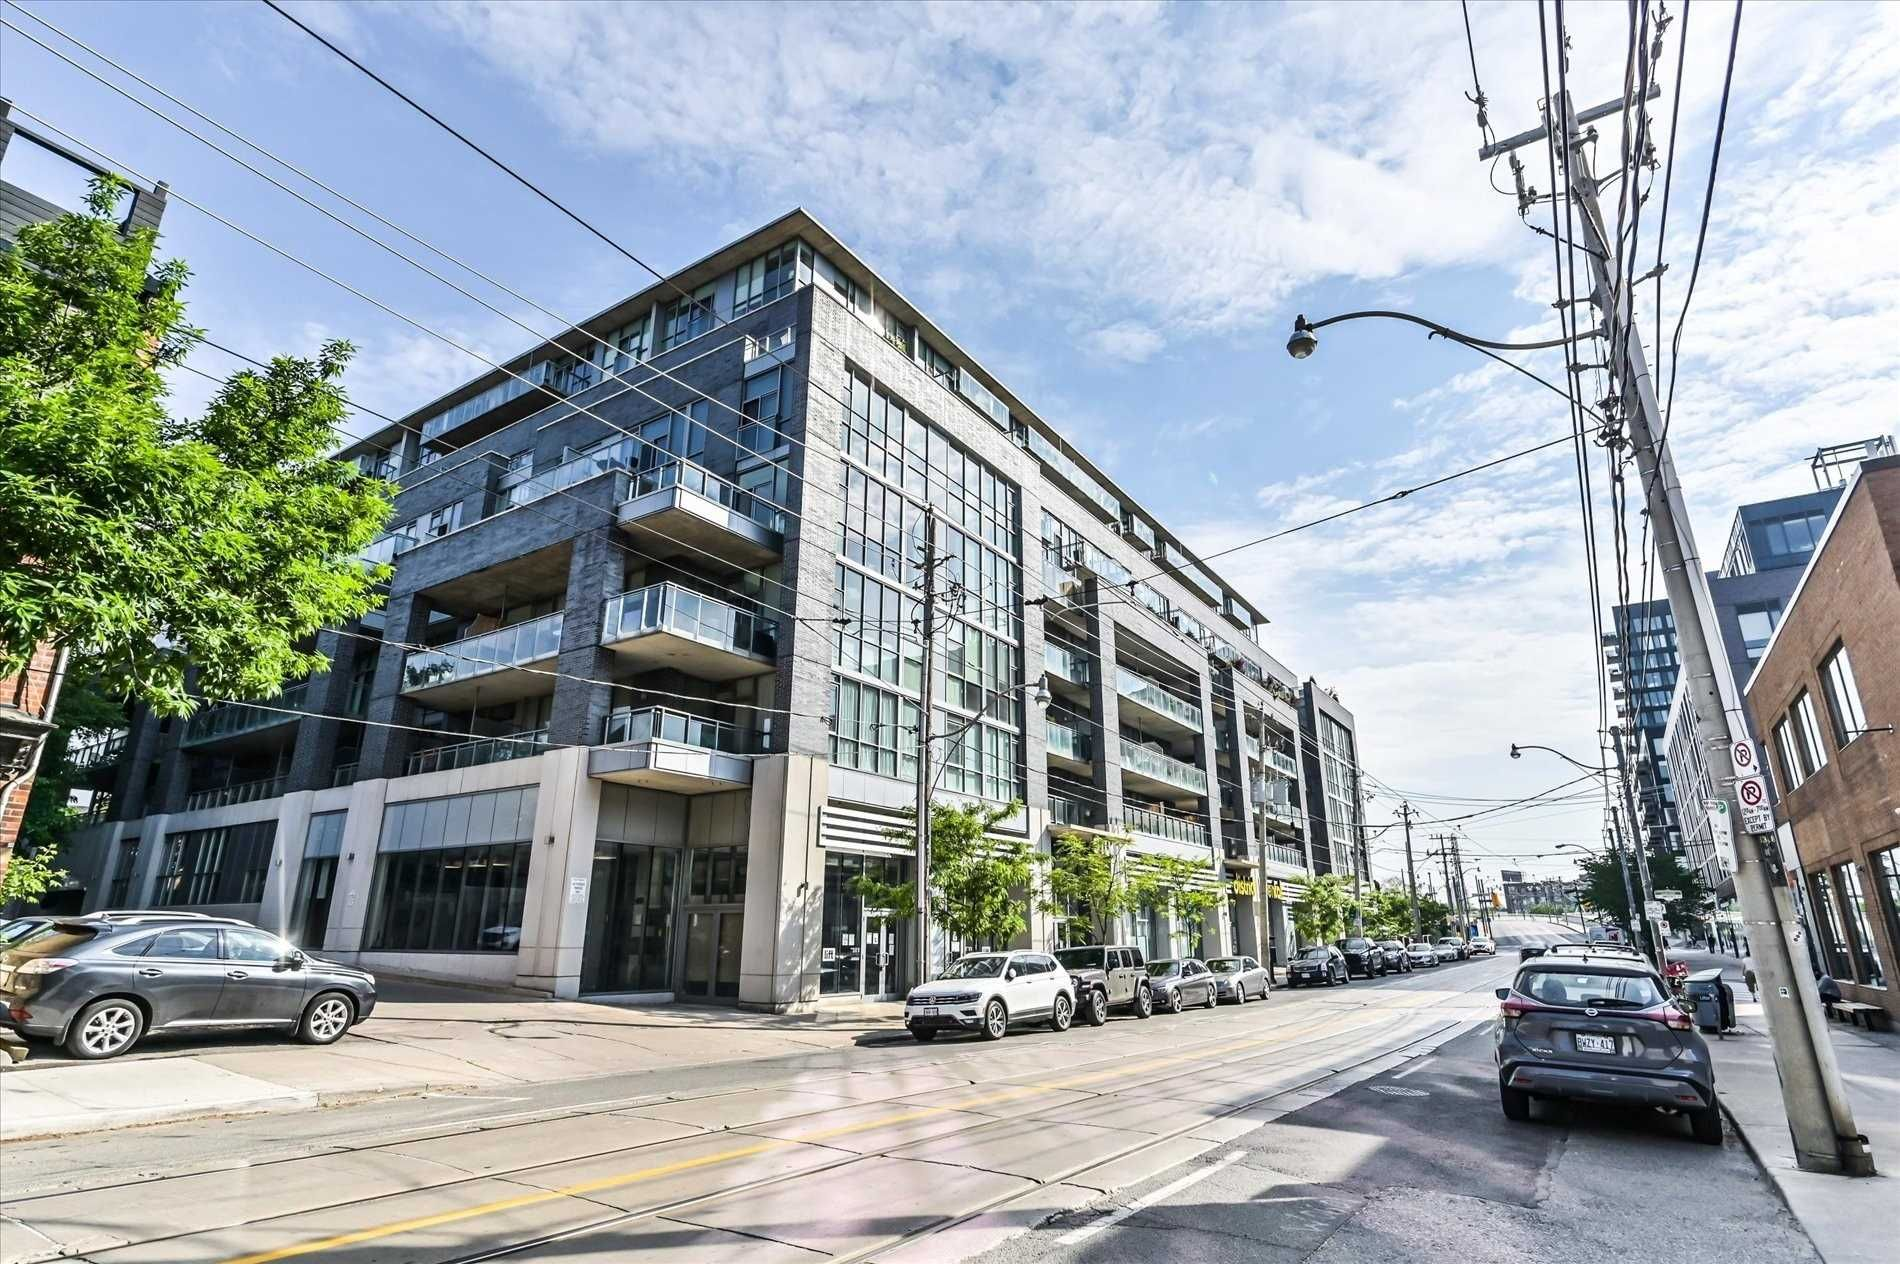 510 King St E, unit 820 for sale in Toronto - image #1